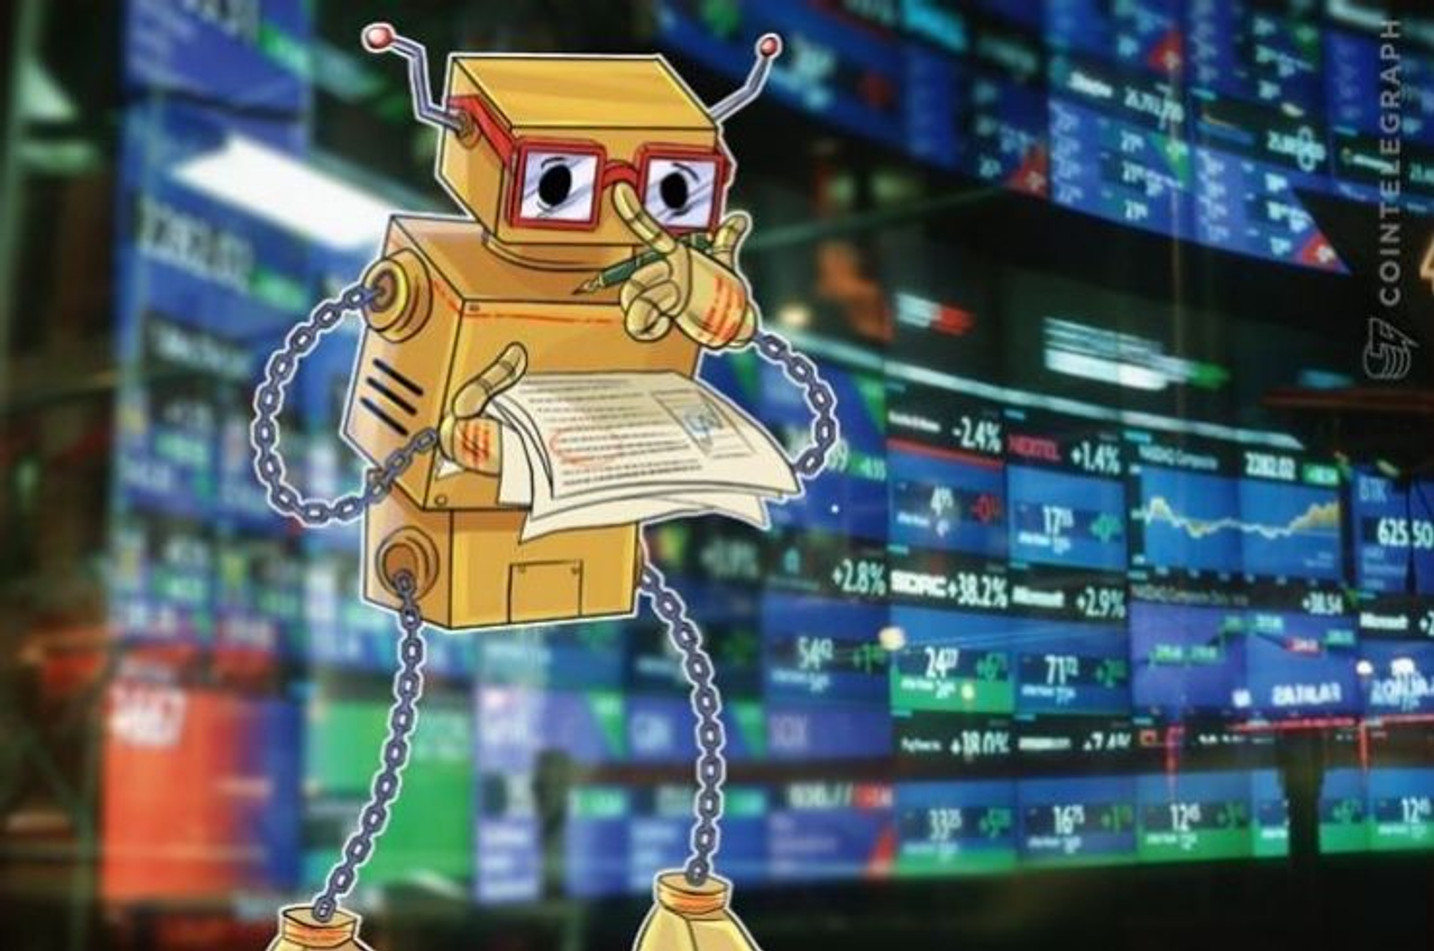 IntoTheBlock busca potenciar tecnología Blockchain con Inteligencia Artificial y Machine Learning